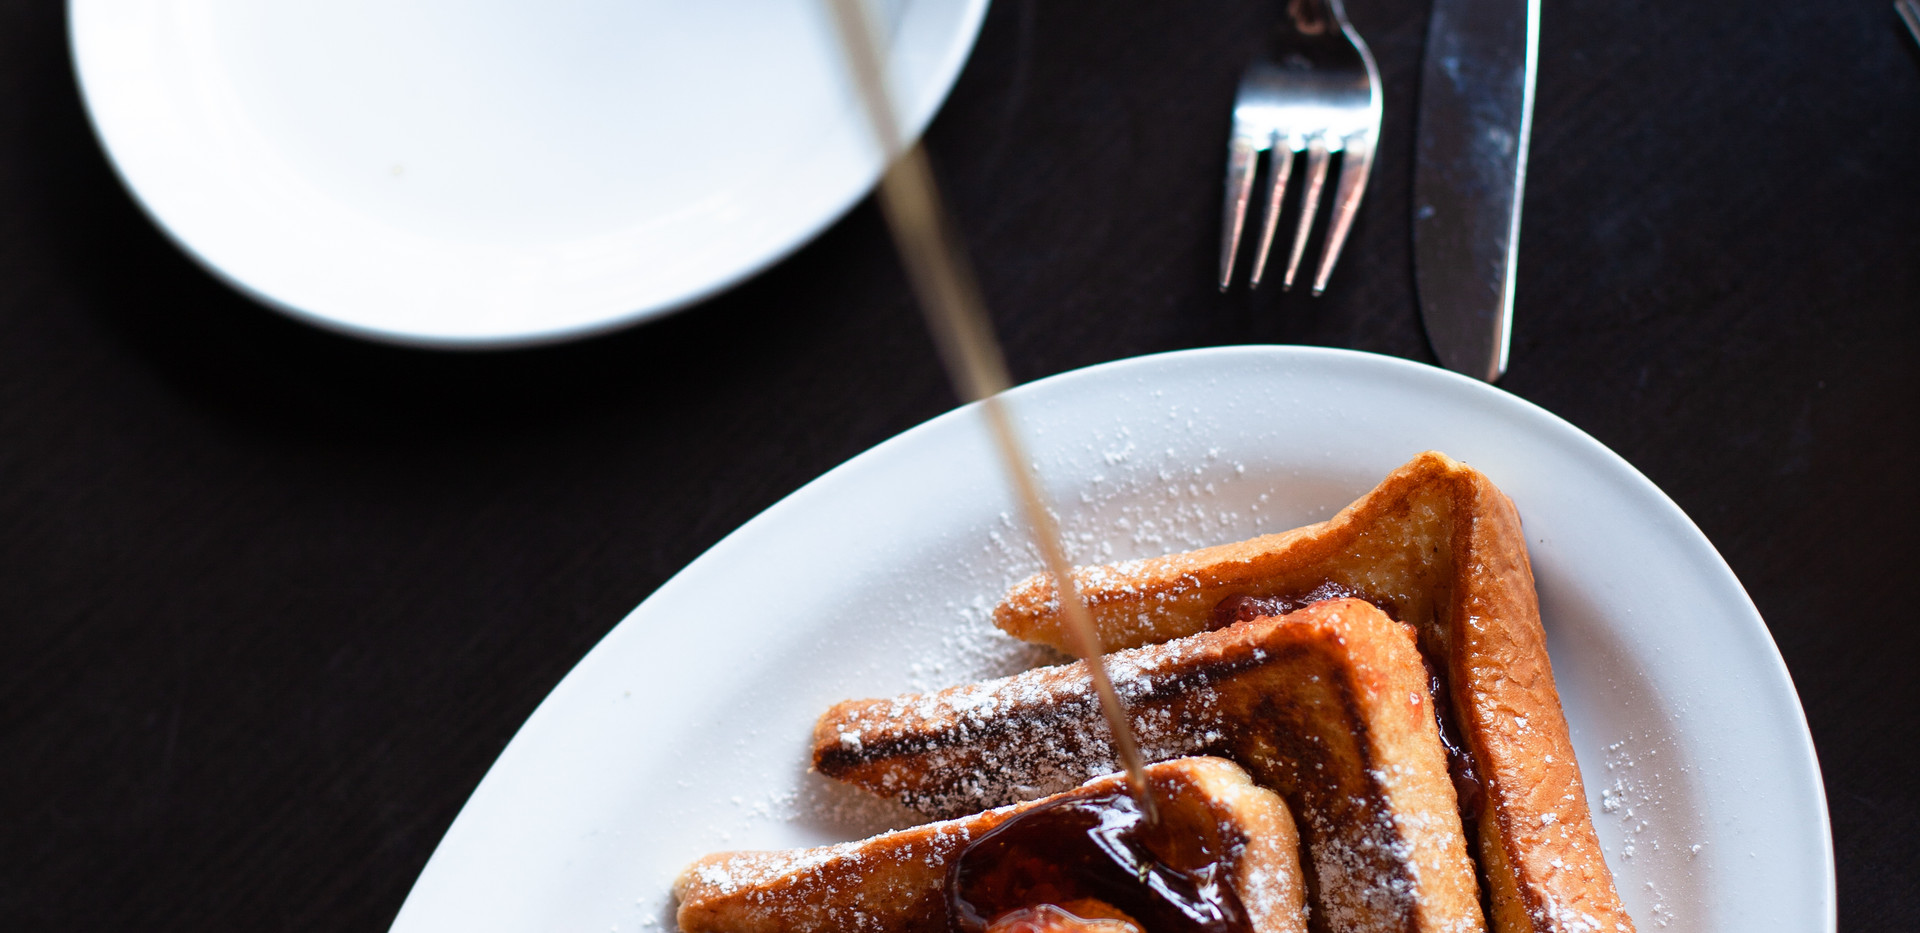 French Toast_1 (1 of 1).jpg